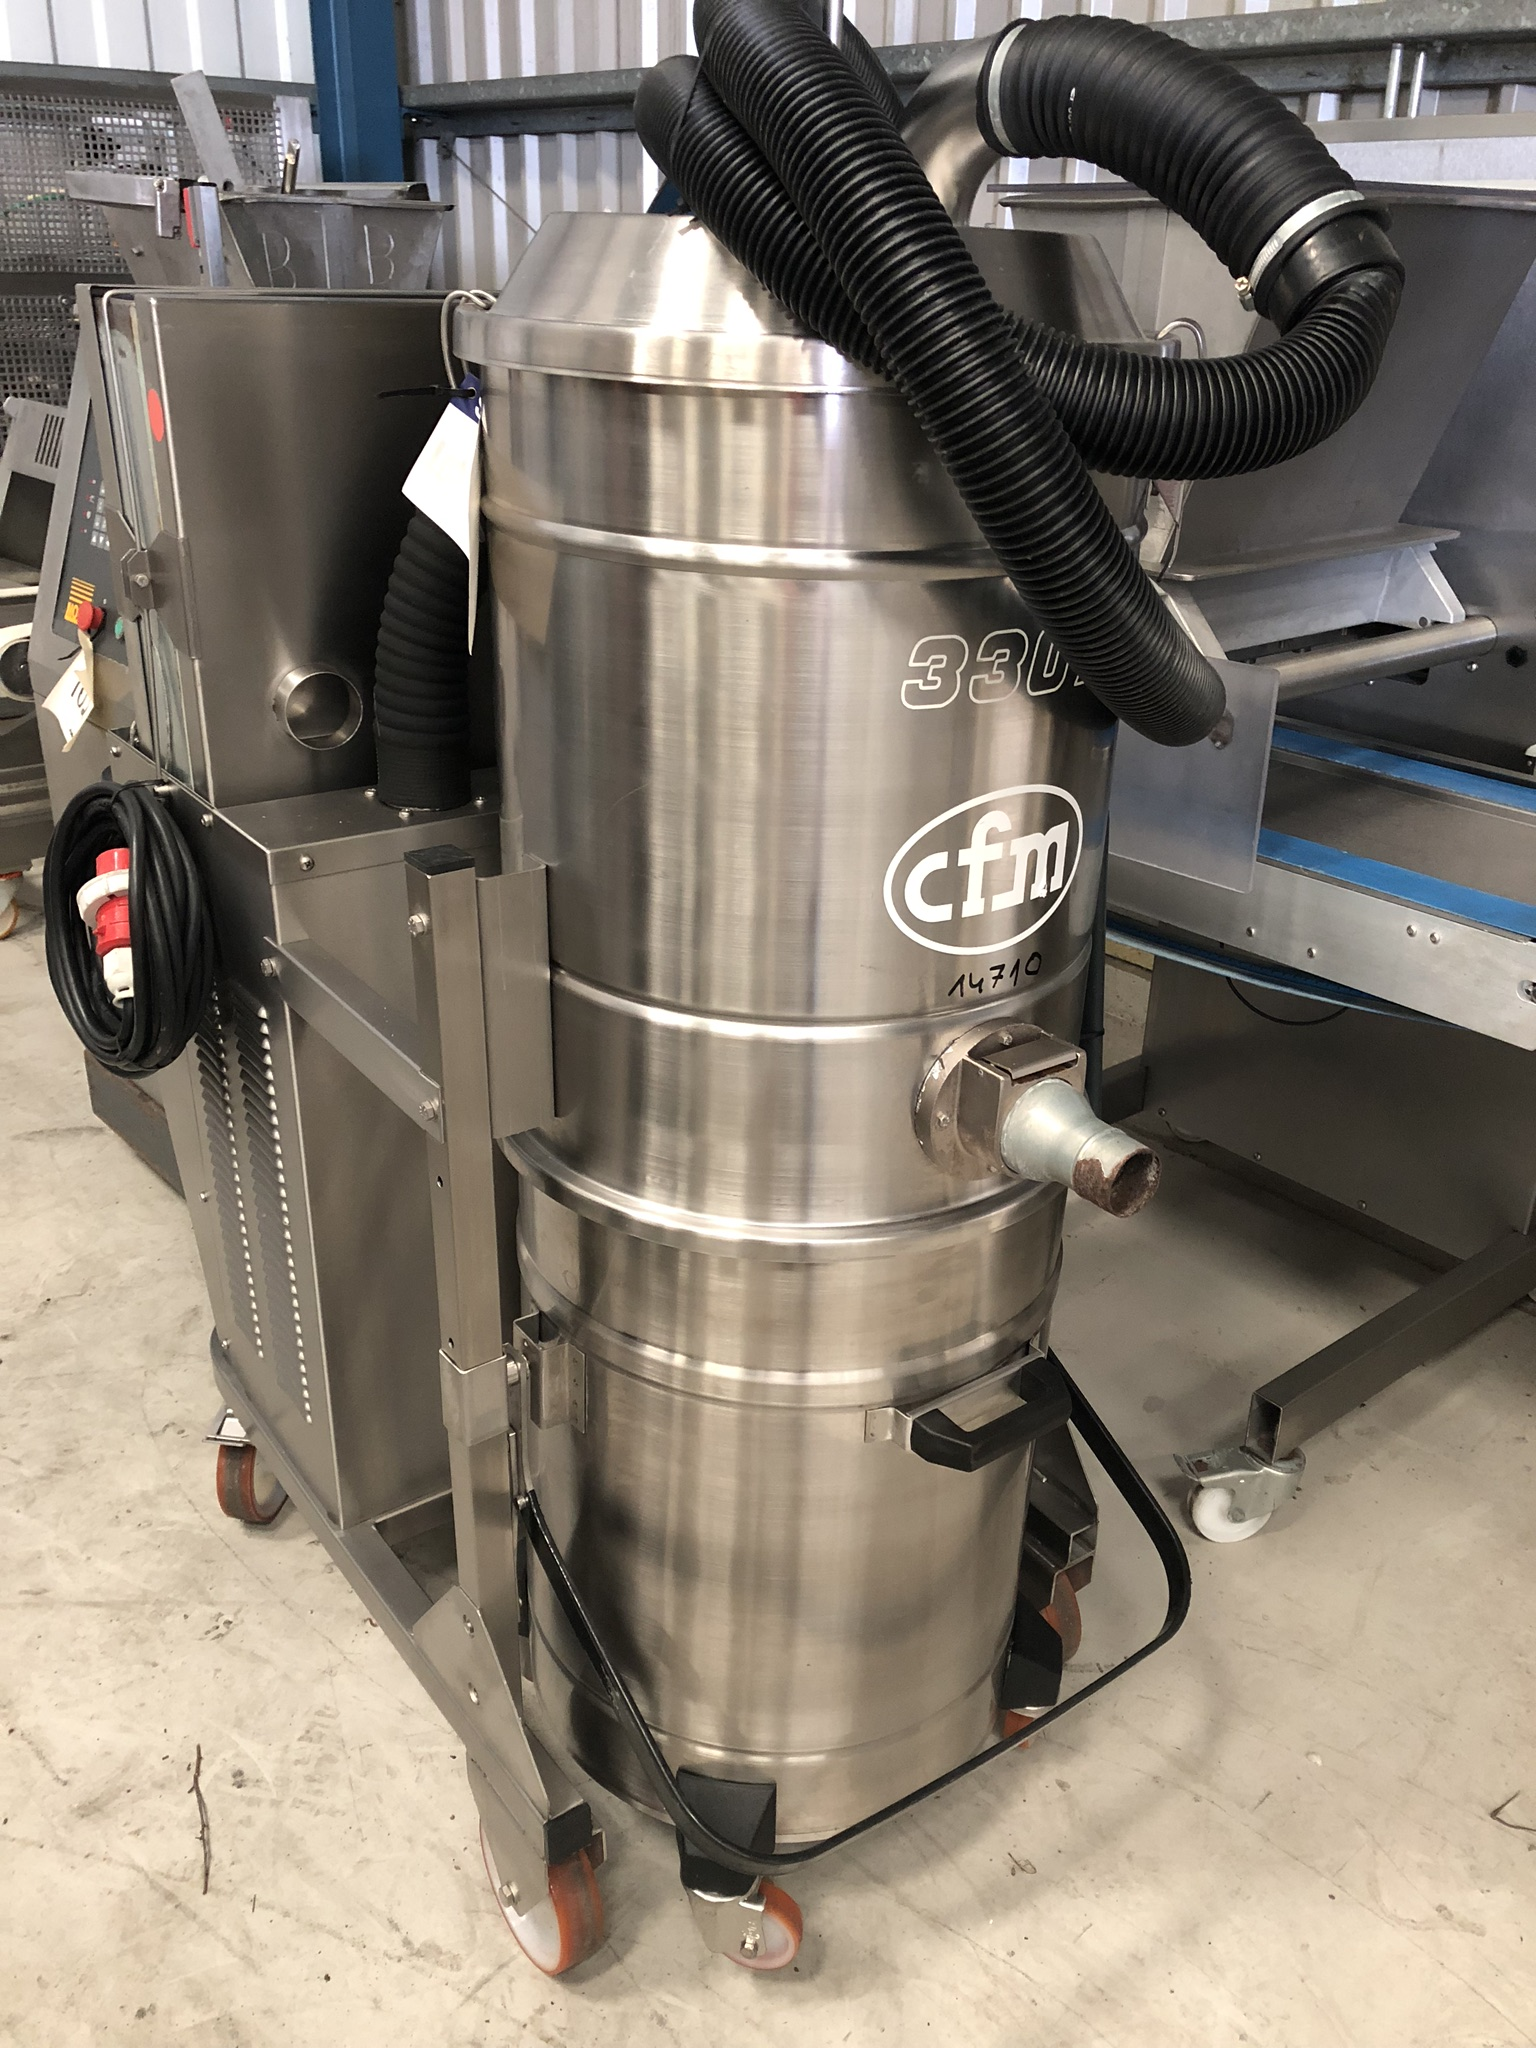 CFM 3307 AXXX INDUSTRIAL VACUUM CLEANER, serial no. 00AE915, approx. 1.5m high x 1.2m x 0.6m, lift - Image 2 of 4